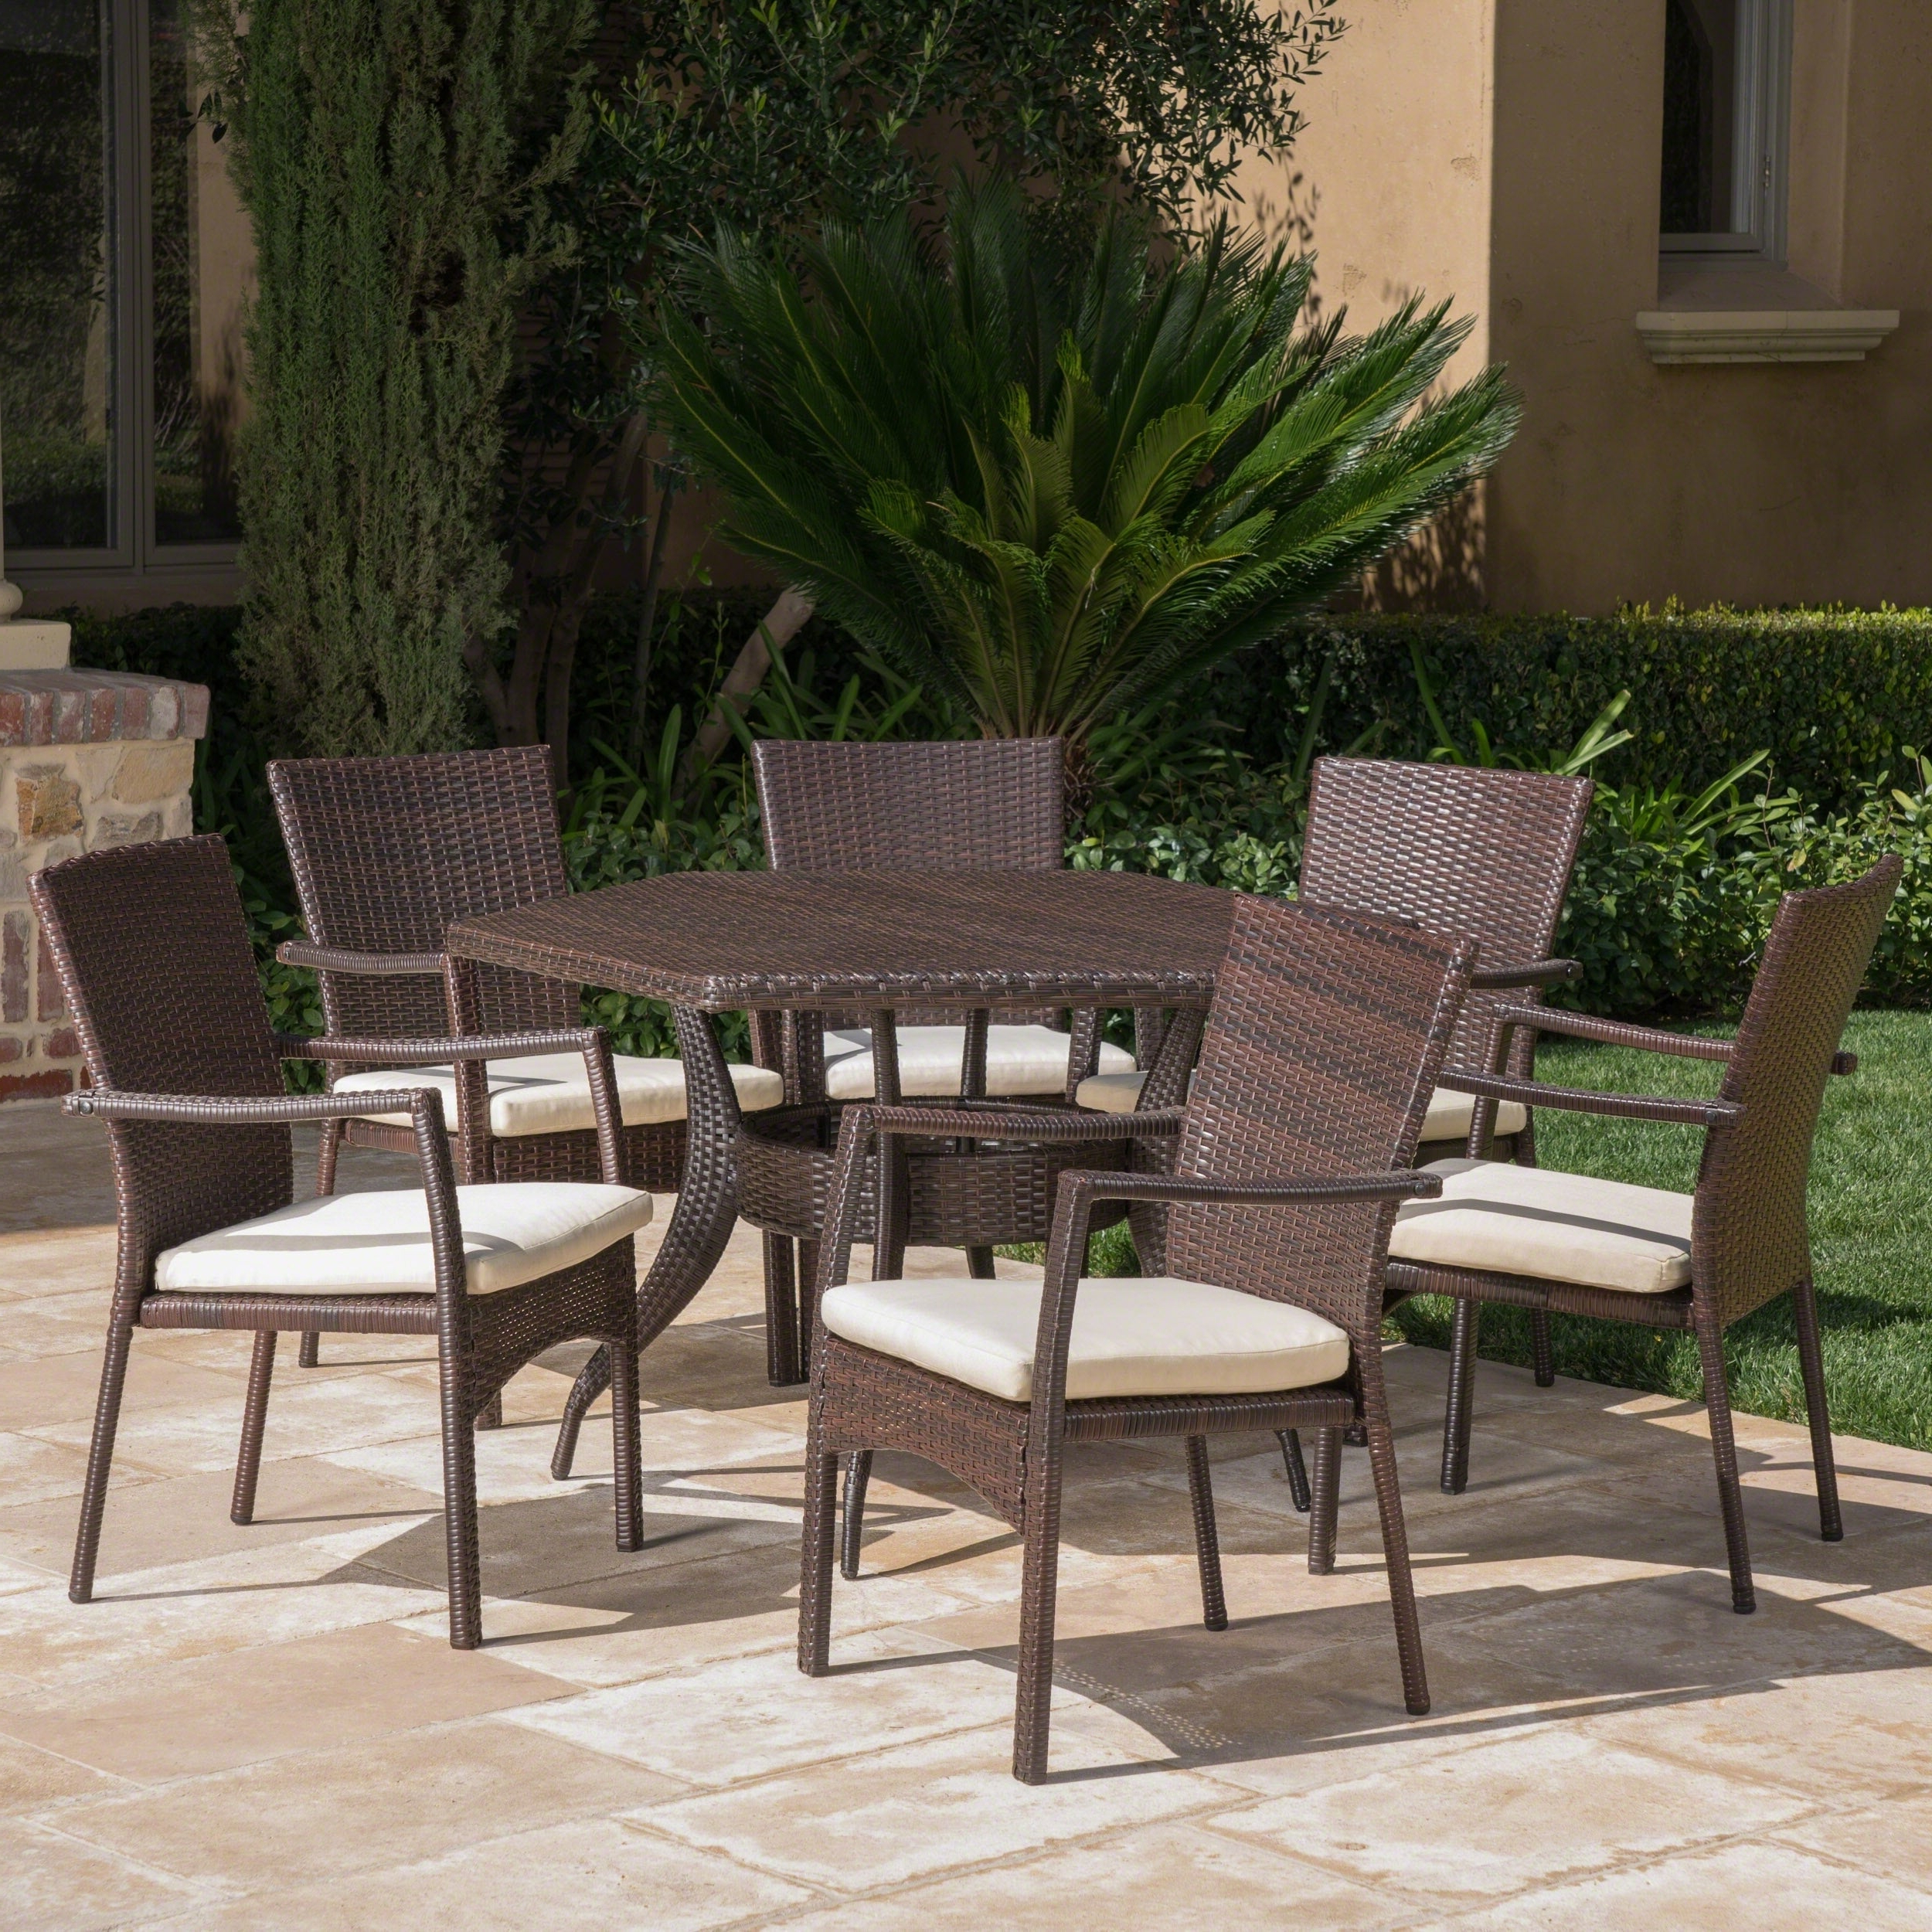 Best And Newest Lawson Outdoor 7 Piece Dining Set With Cushionschristopher Knight Home With Lawson Patio Sofas With Cushions (Gallery 14 of 25)